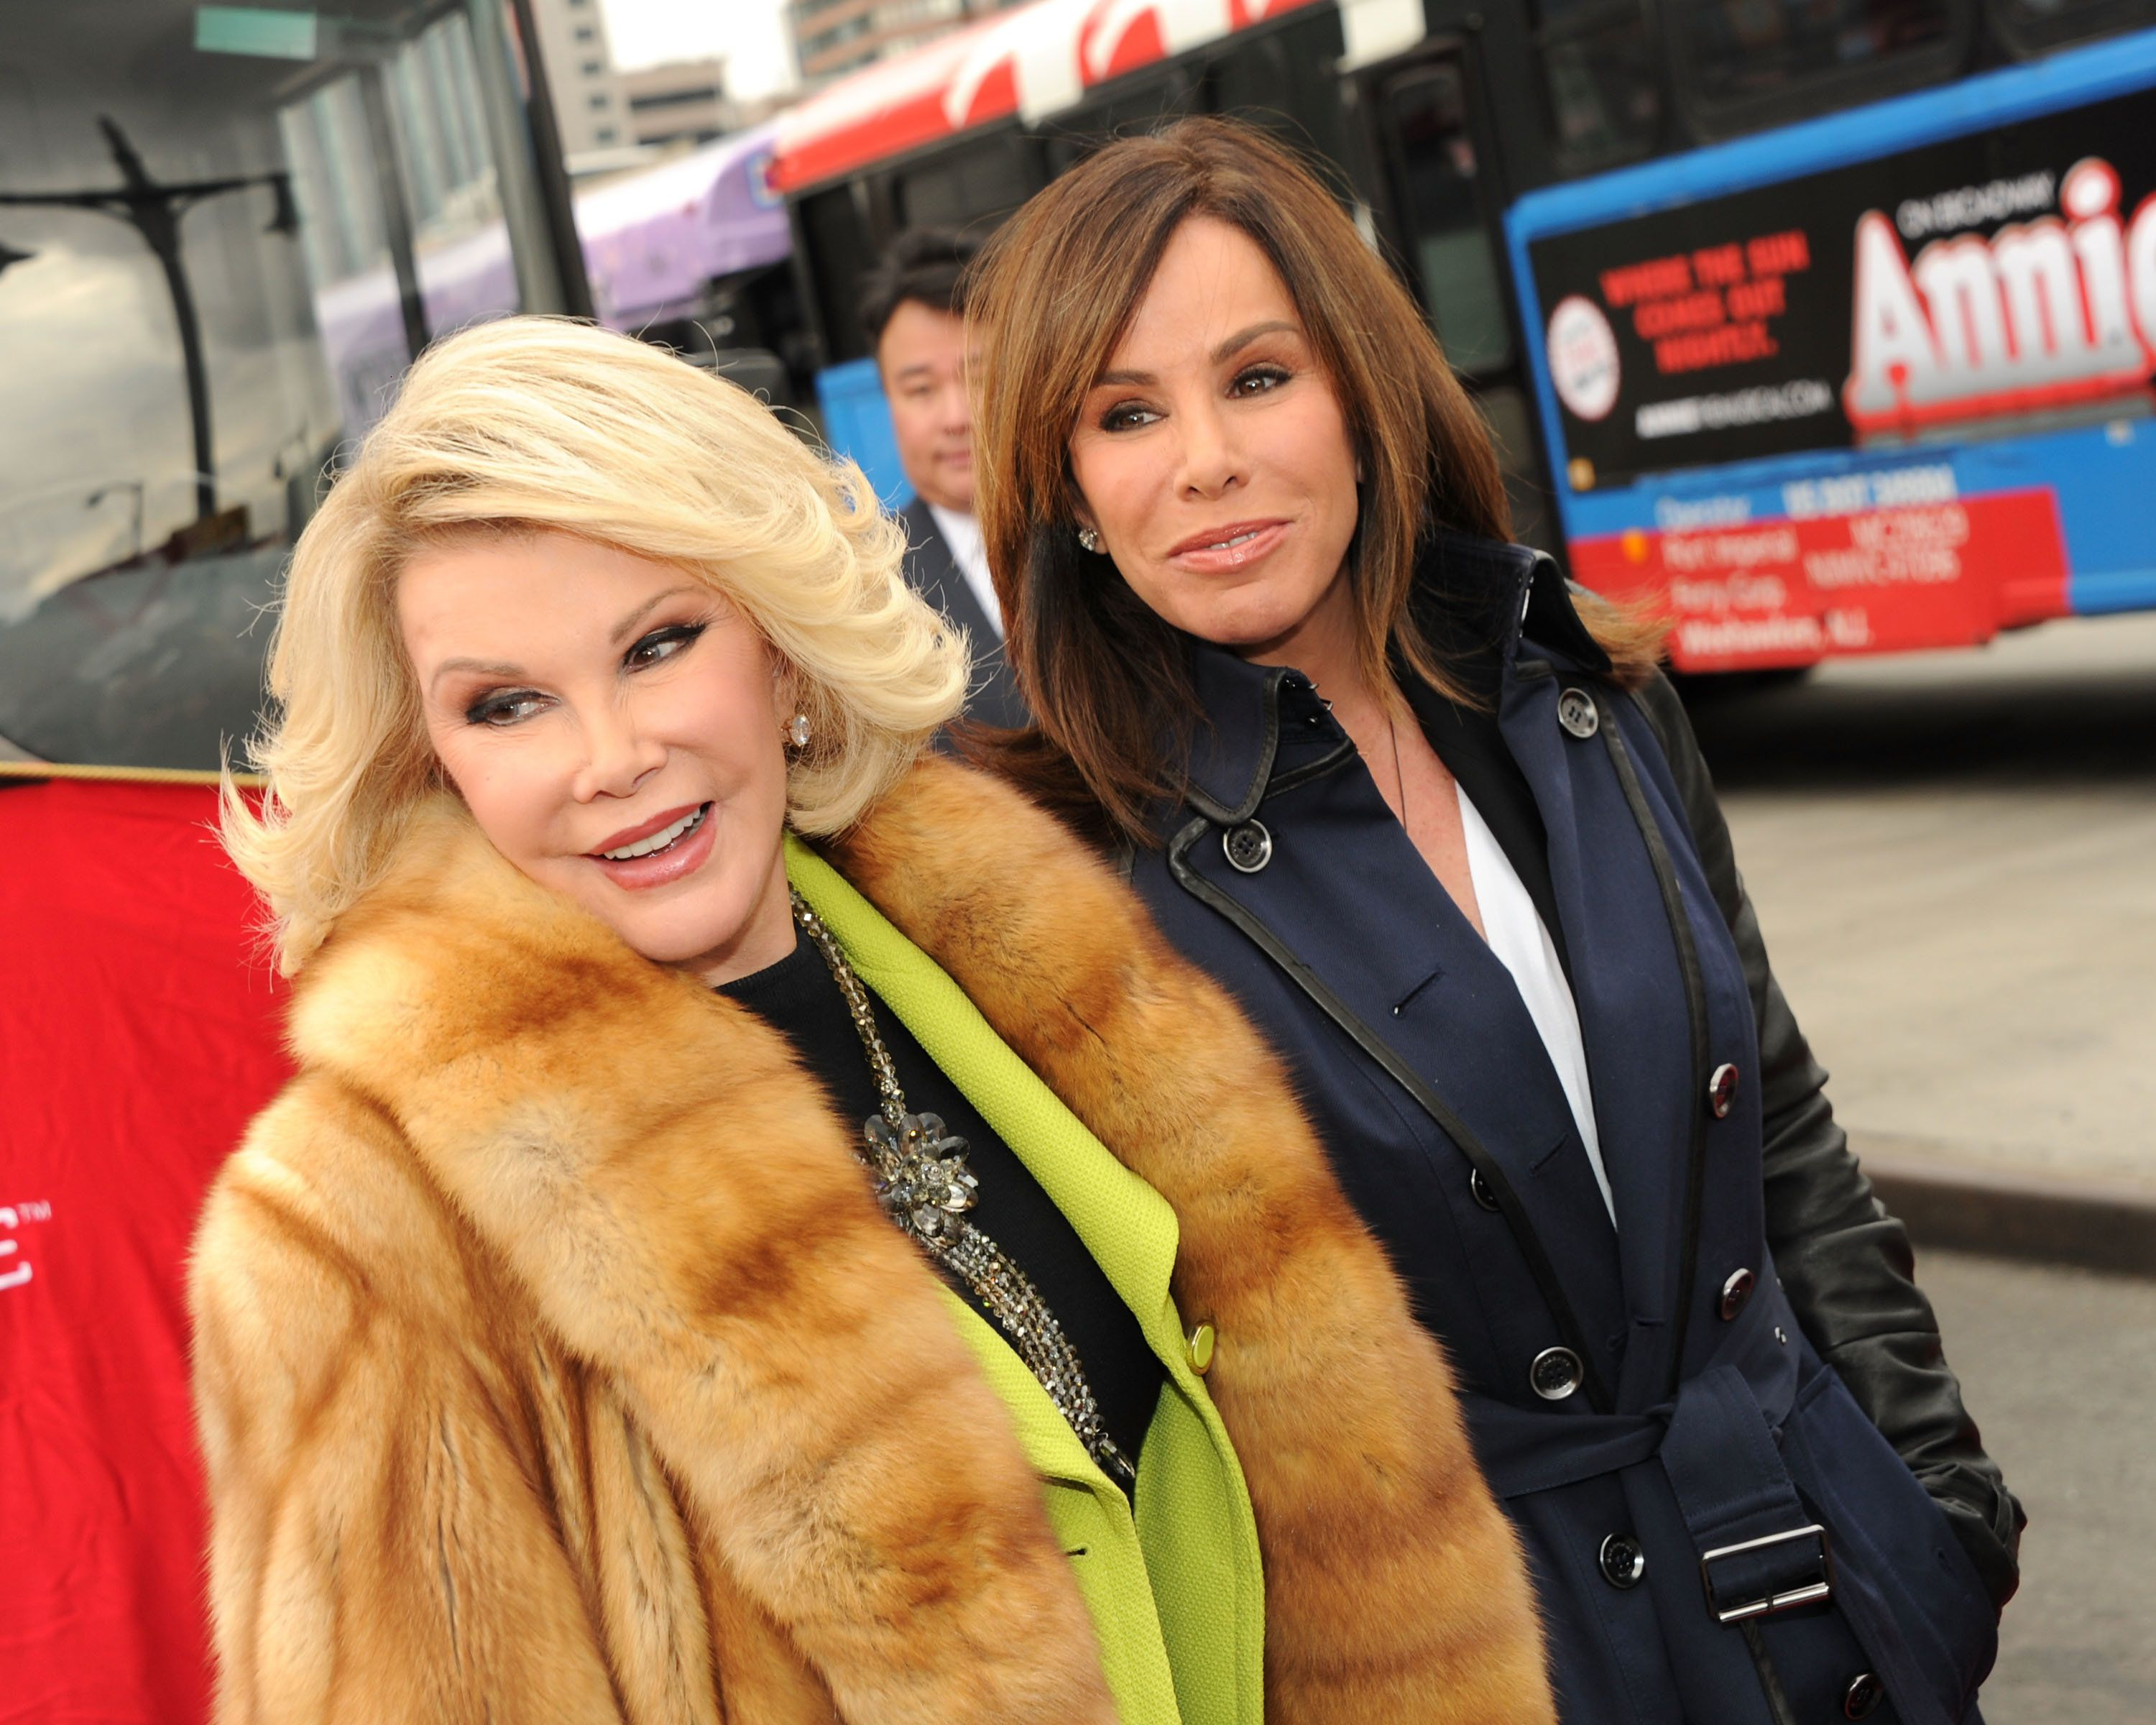 NEW YORK, NY - MARCH 01:  Joan Rivers and Melissa Rivers attend Gray Line New York honors WE tv stars Joan & Melissa Rivers at Pier 78 on March 1, 2013 in New York City.  (Photo by Ben Gabbe/Getty Images)